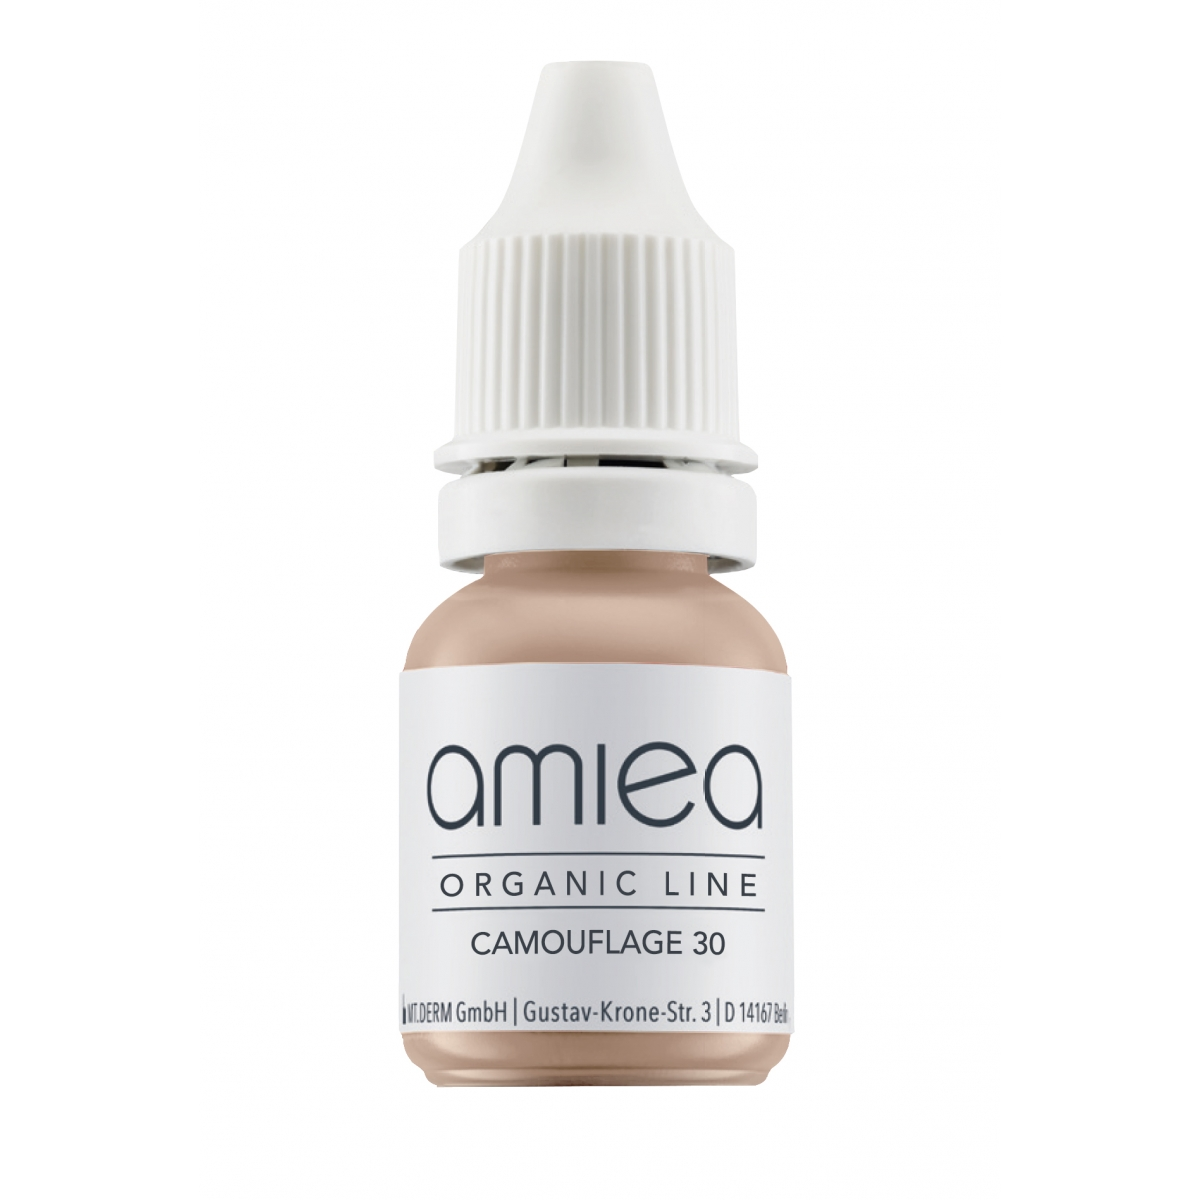 Organicline (5 ml)  - PIGMENTS AMIEA ORGANICLINE CAMOUFLAGE 30, Flacon 5 ml